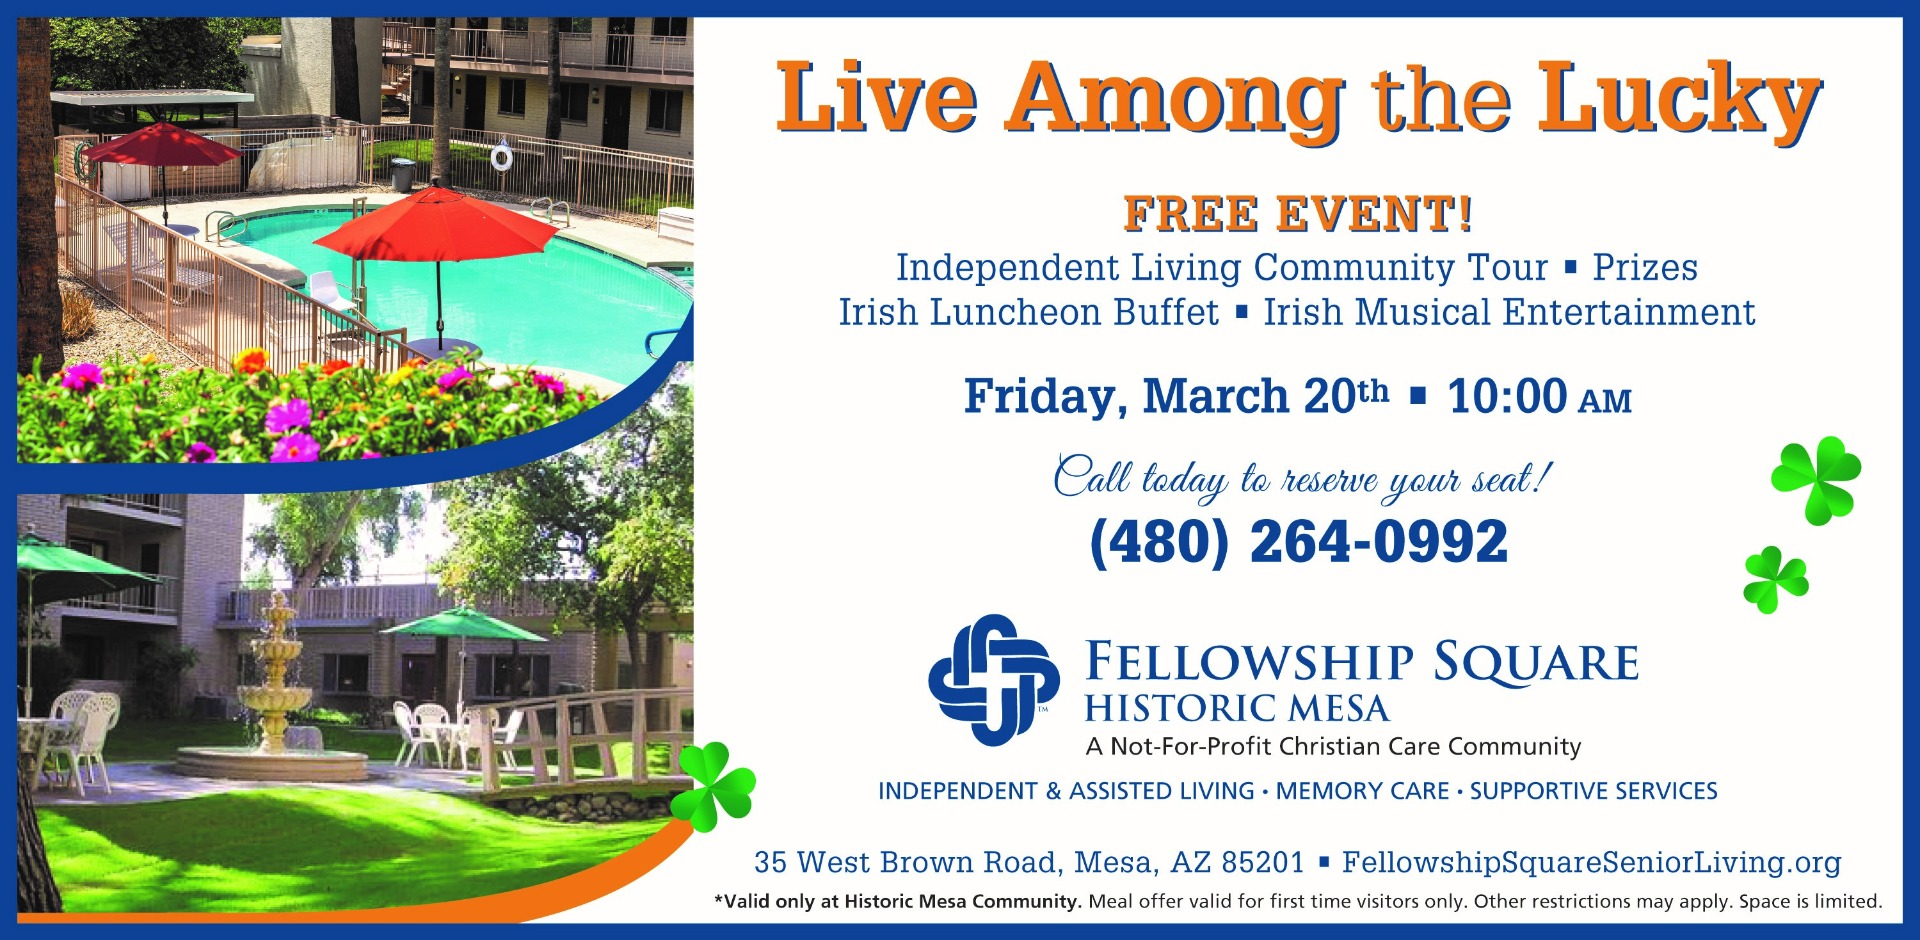 Flyer for independent living event at Fellowship Square Historic Mesa - Free to the community on March 20, 2020